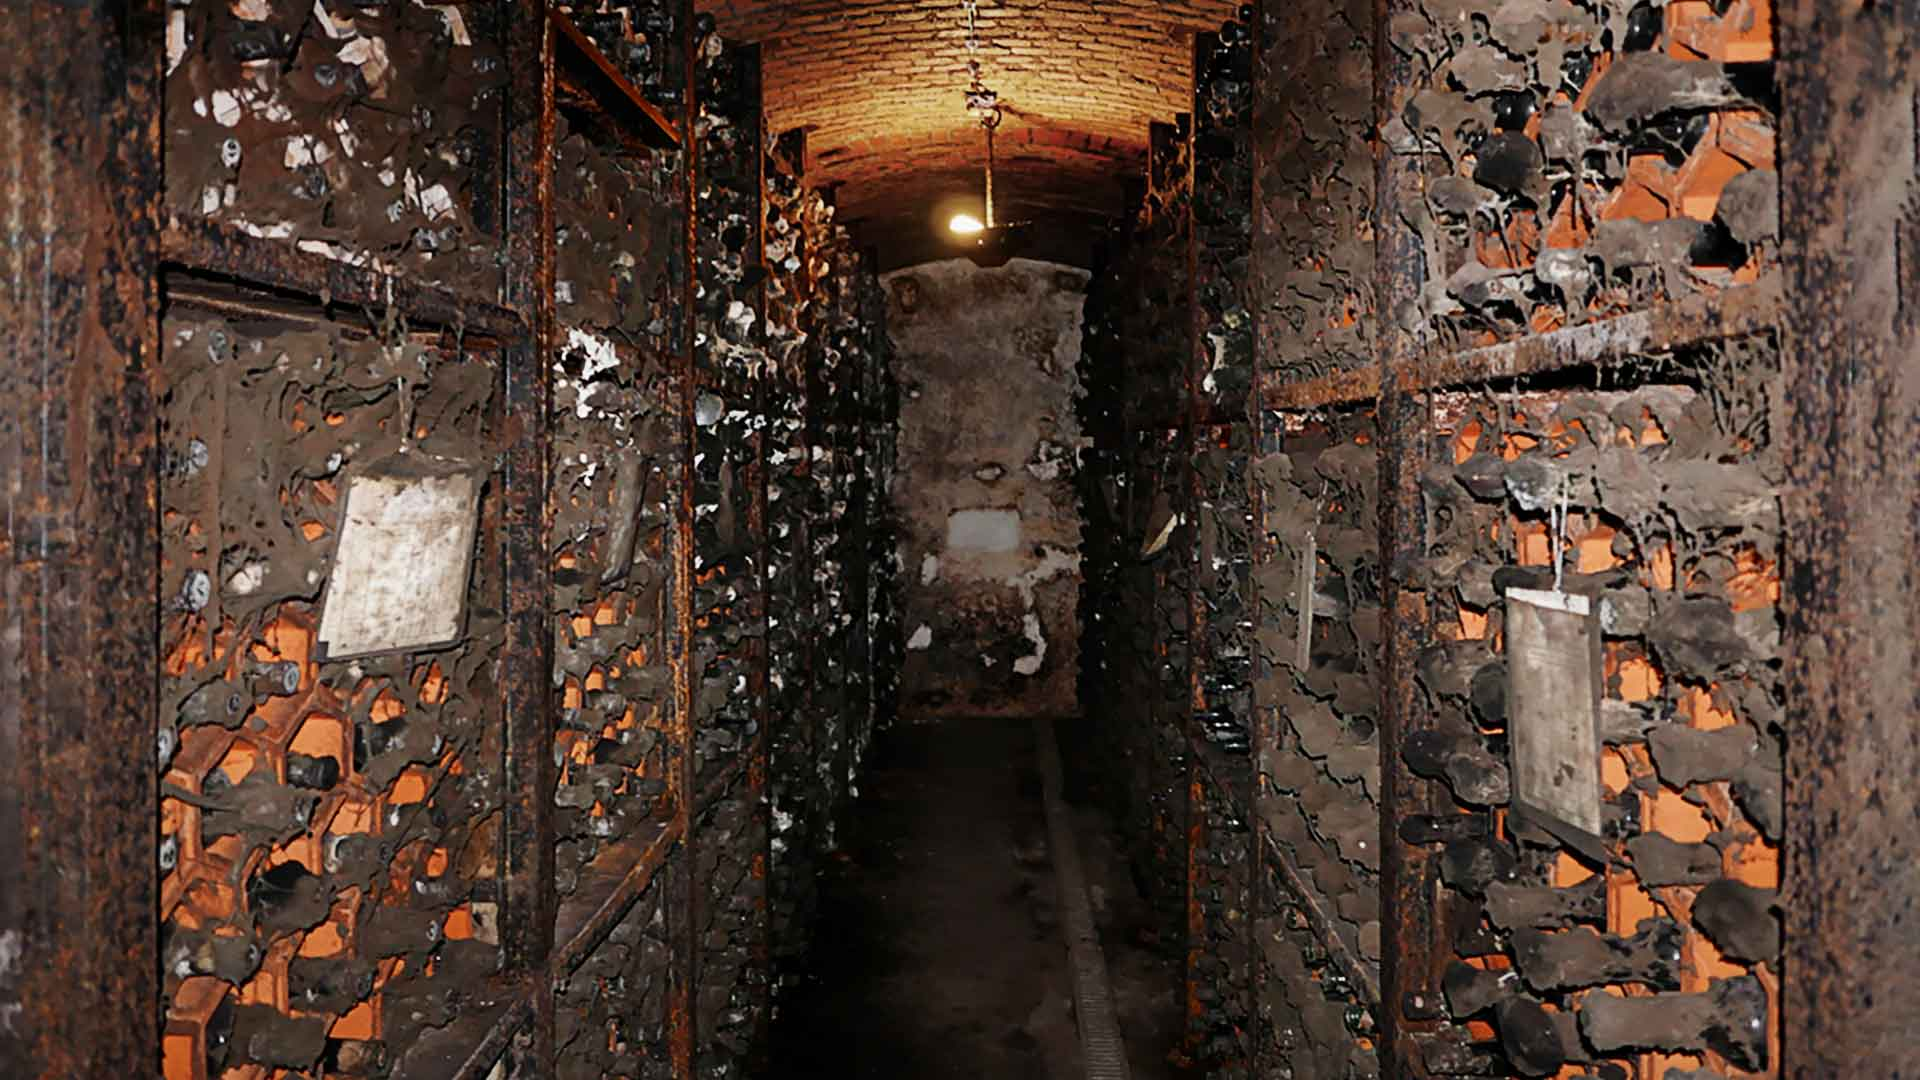 Historical cellar at vineyard with old Port wines